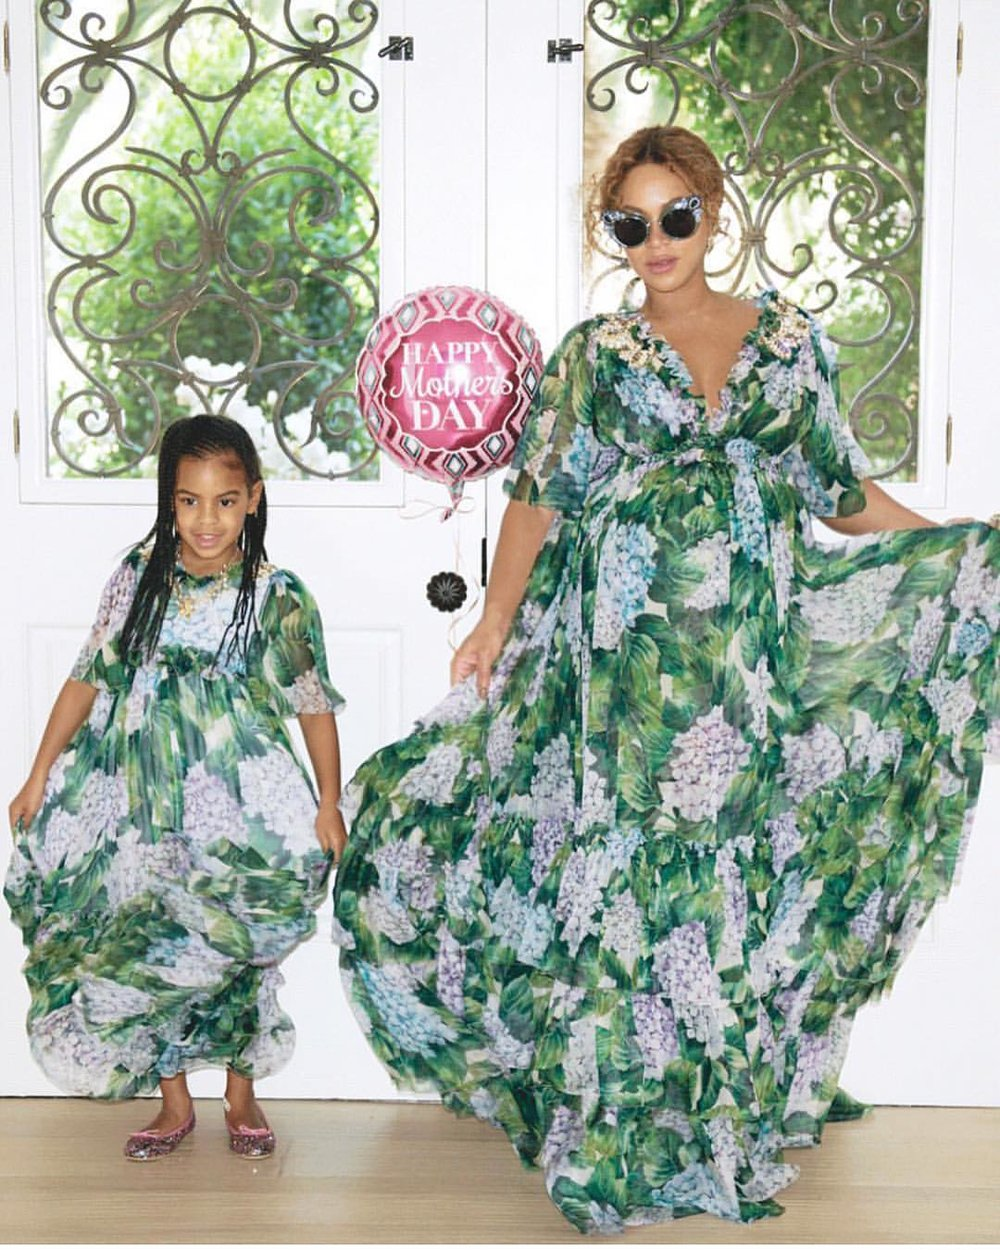 2-Beyonces-Mothers-Day-Dolce-Gabbana-Tiered-Hydrangea-Floral-Chiffon-Gown-Giuseppe-Zanotti-Crystal-Embellished-Mirror-Sandals-and-Miu-Miu-Cat-Eye-Sunnies.jpg